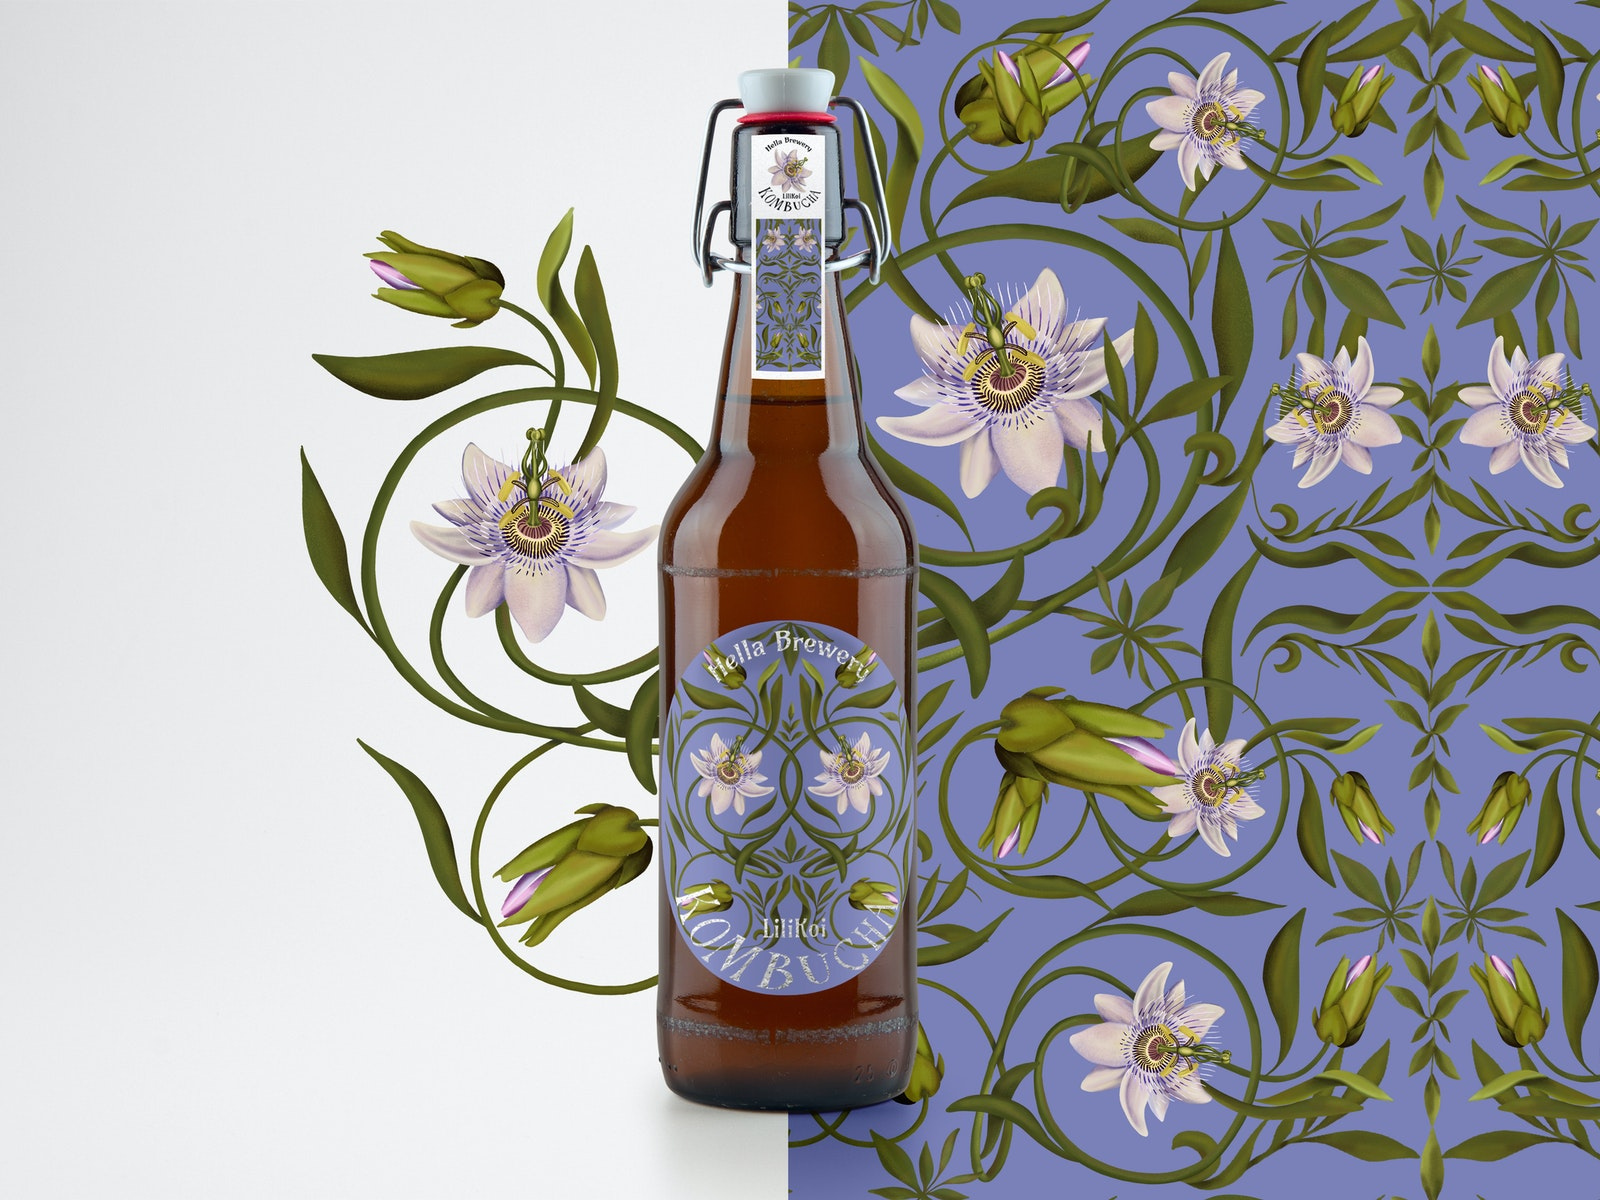 Product design for Hella Brewery by swedish artist Ishtar Bäcklund